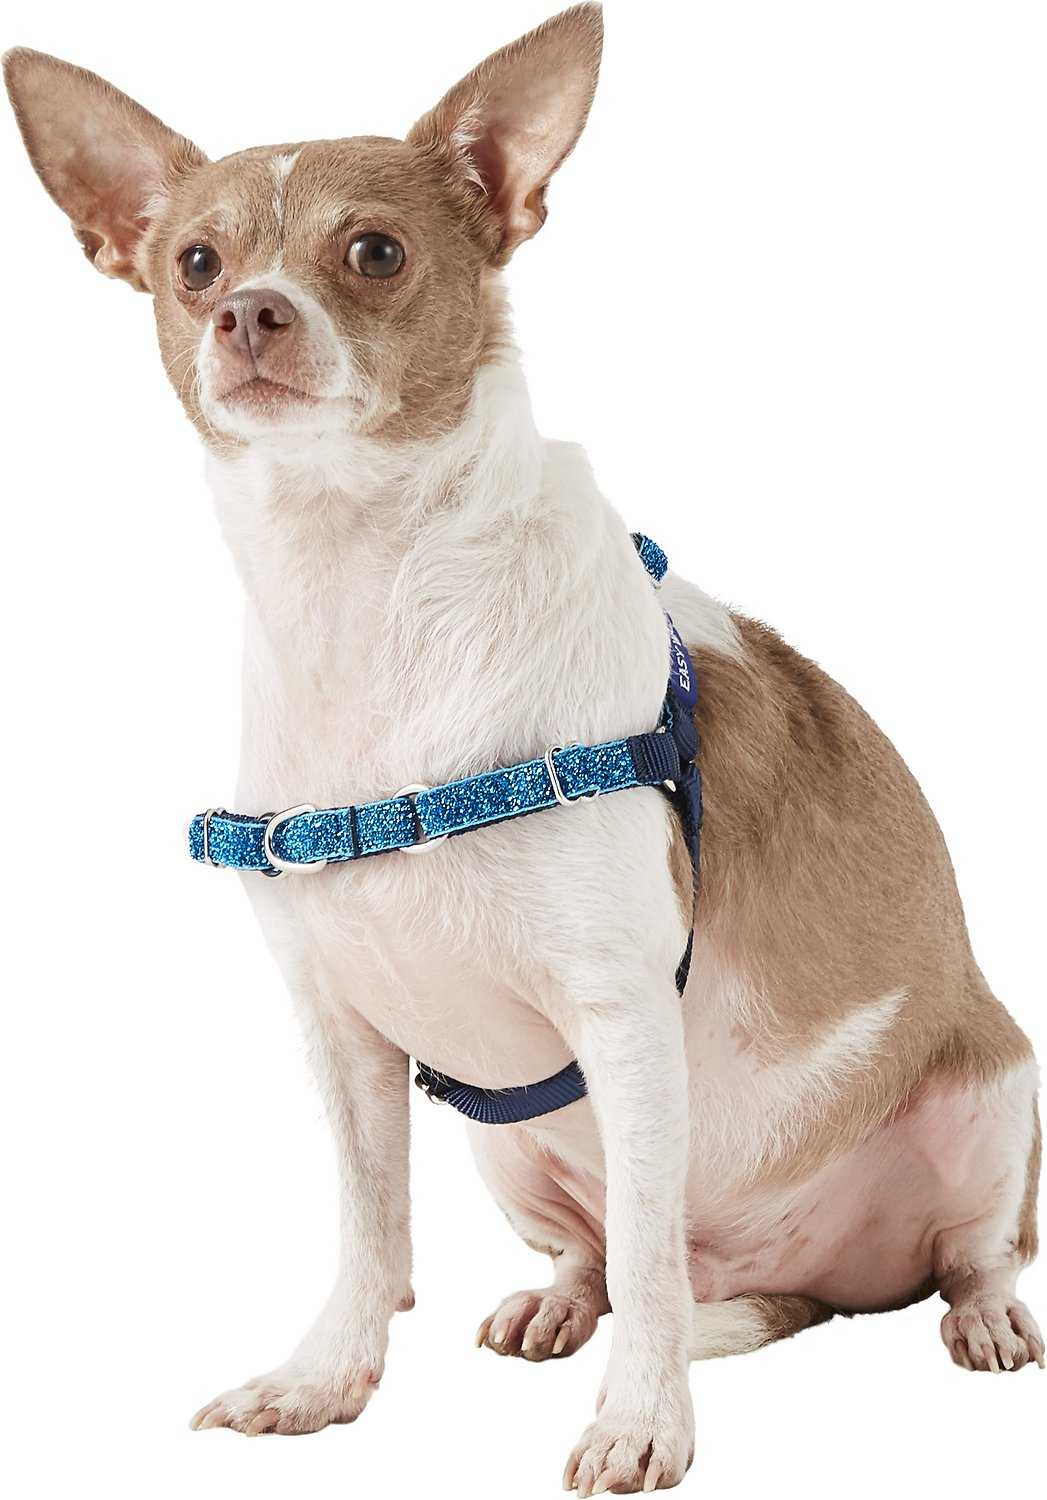 easy walk dog harness instructions